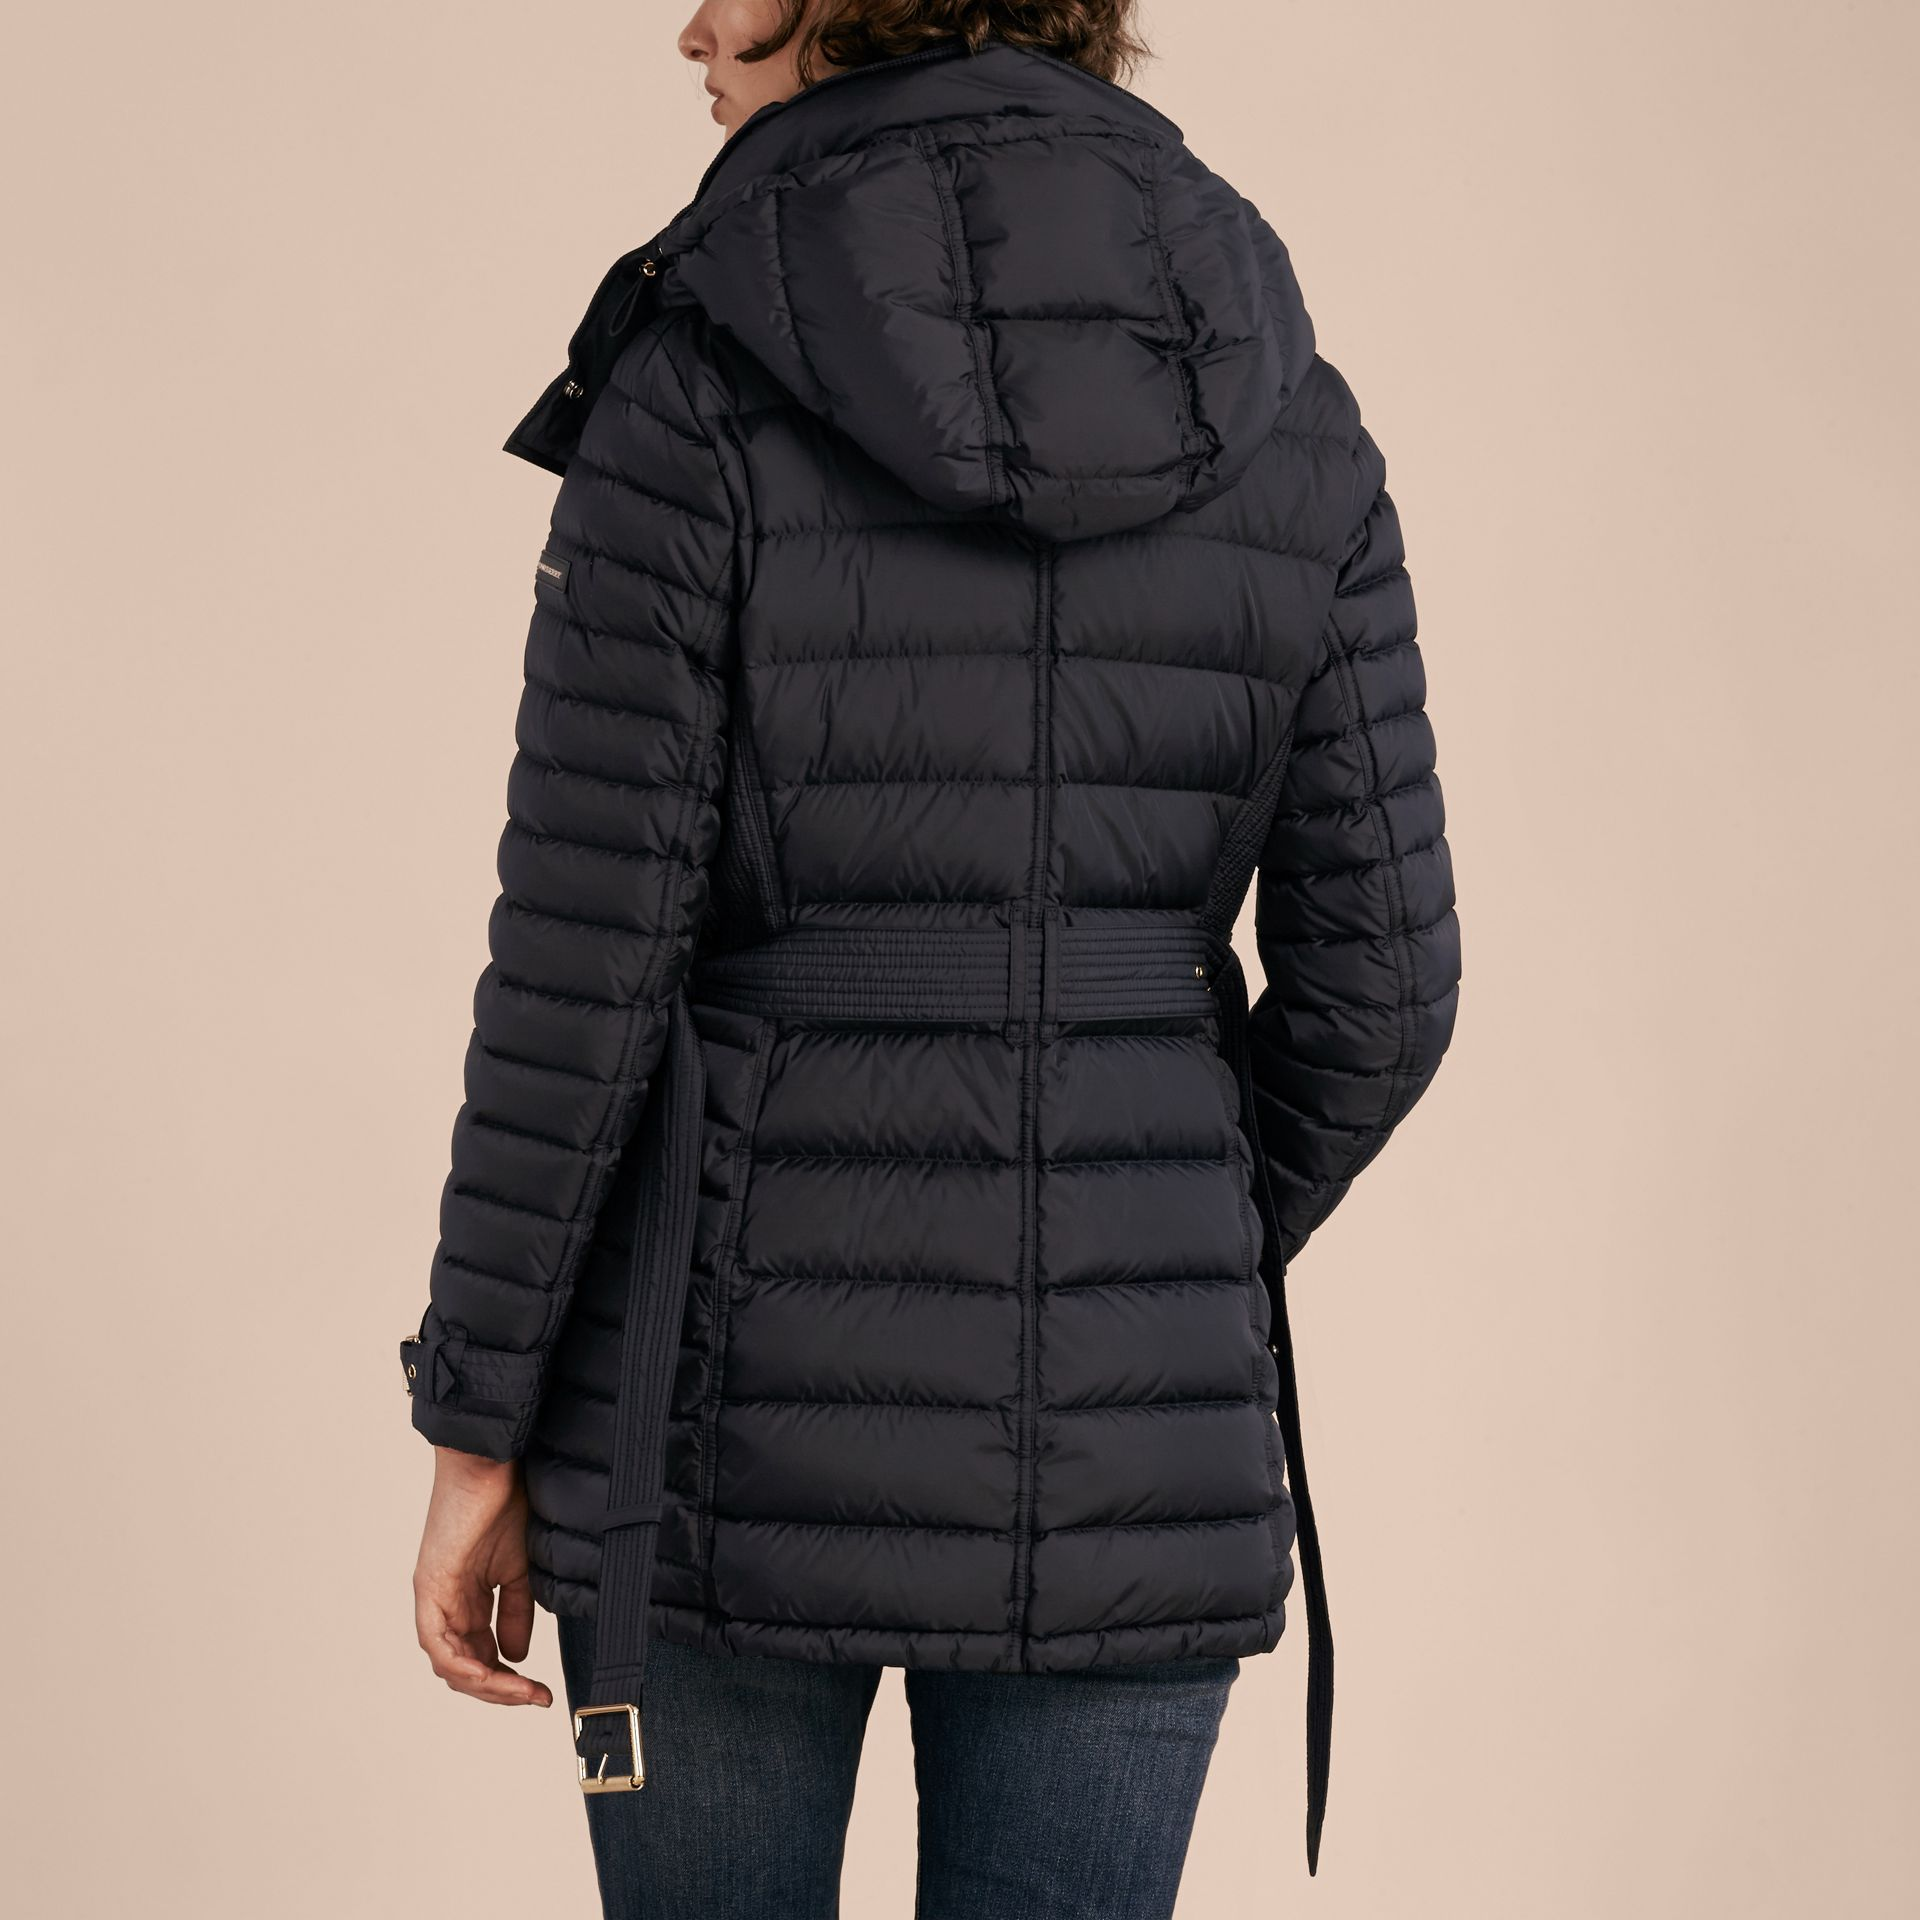 Navy Down-filled Puffer Jacket with Packaway Hood Navy - gallery image 3